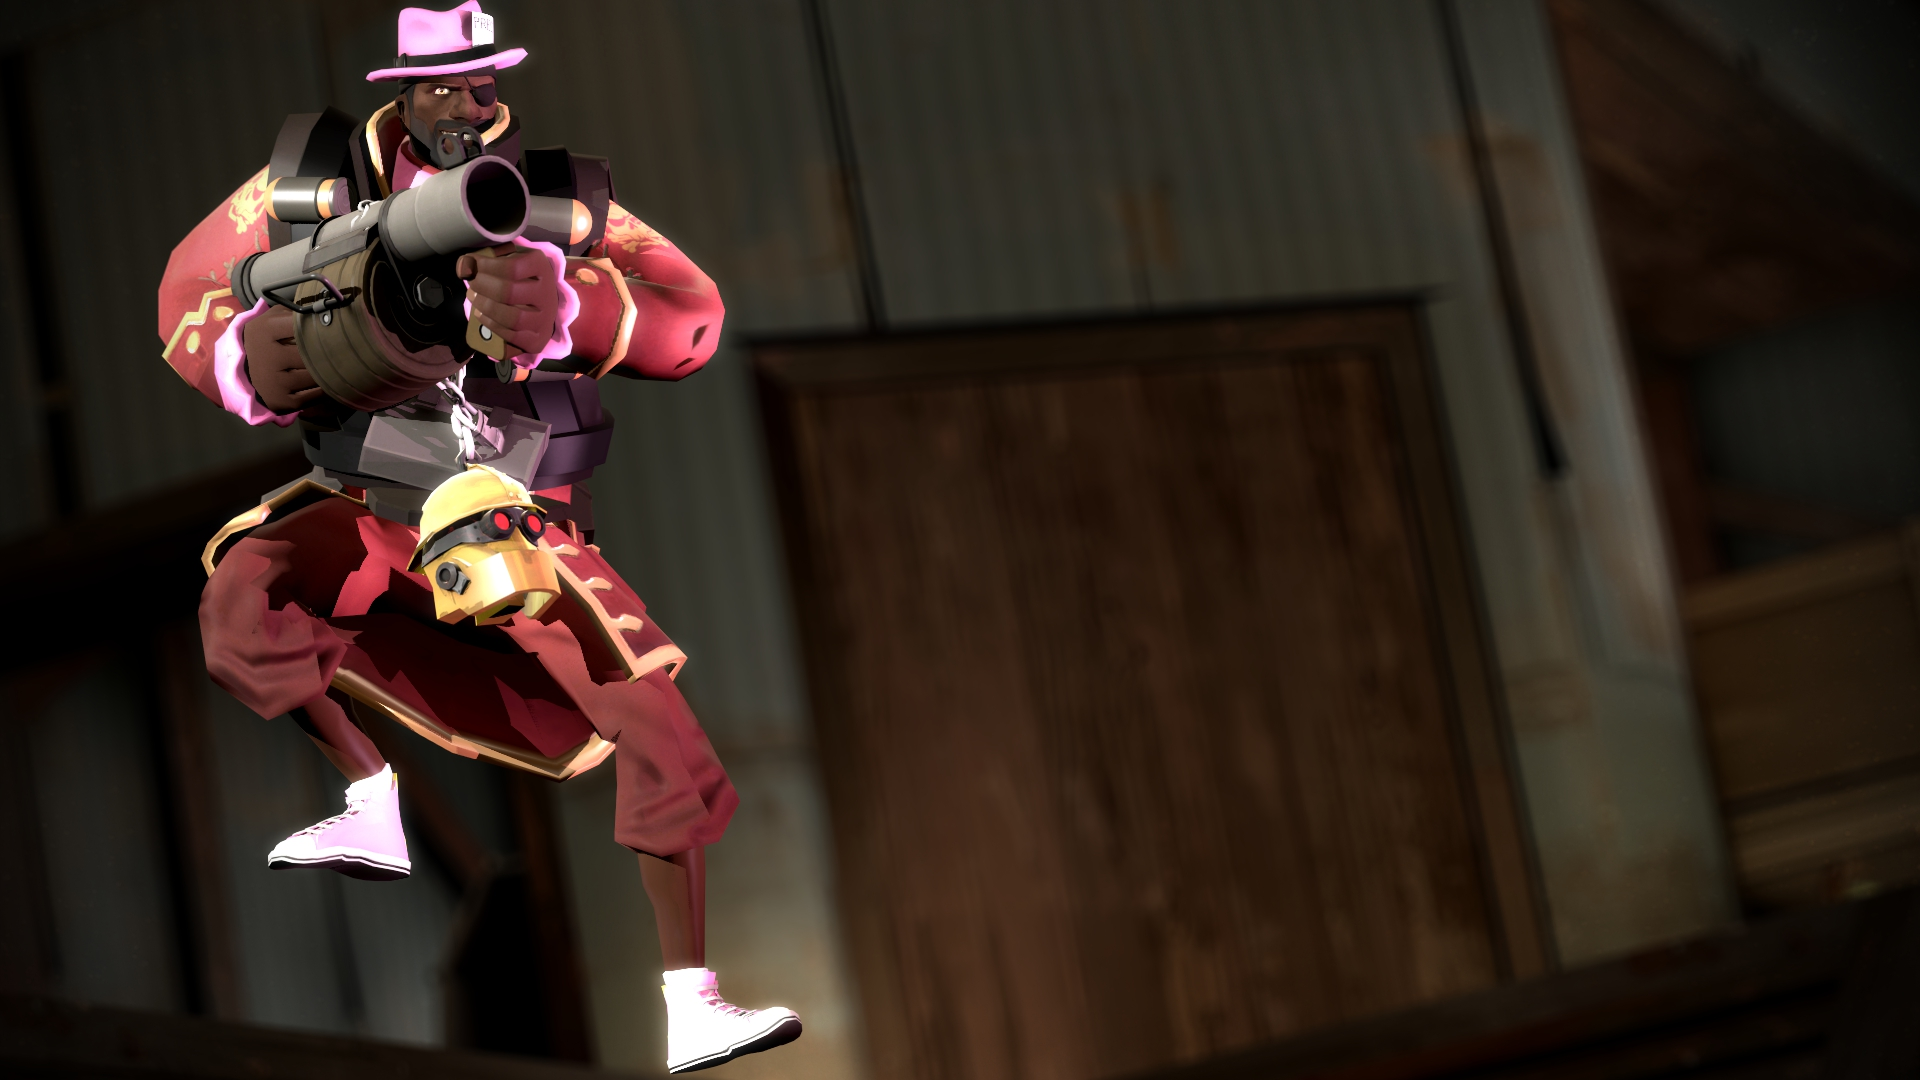 My loadout Demoman HD Wallpaper Background Image 1920x1080 1920x1080